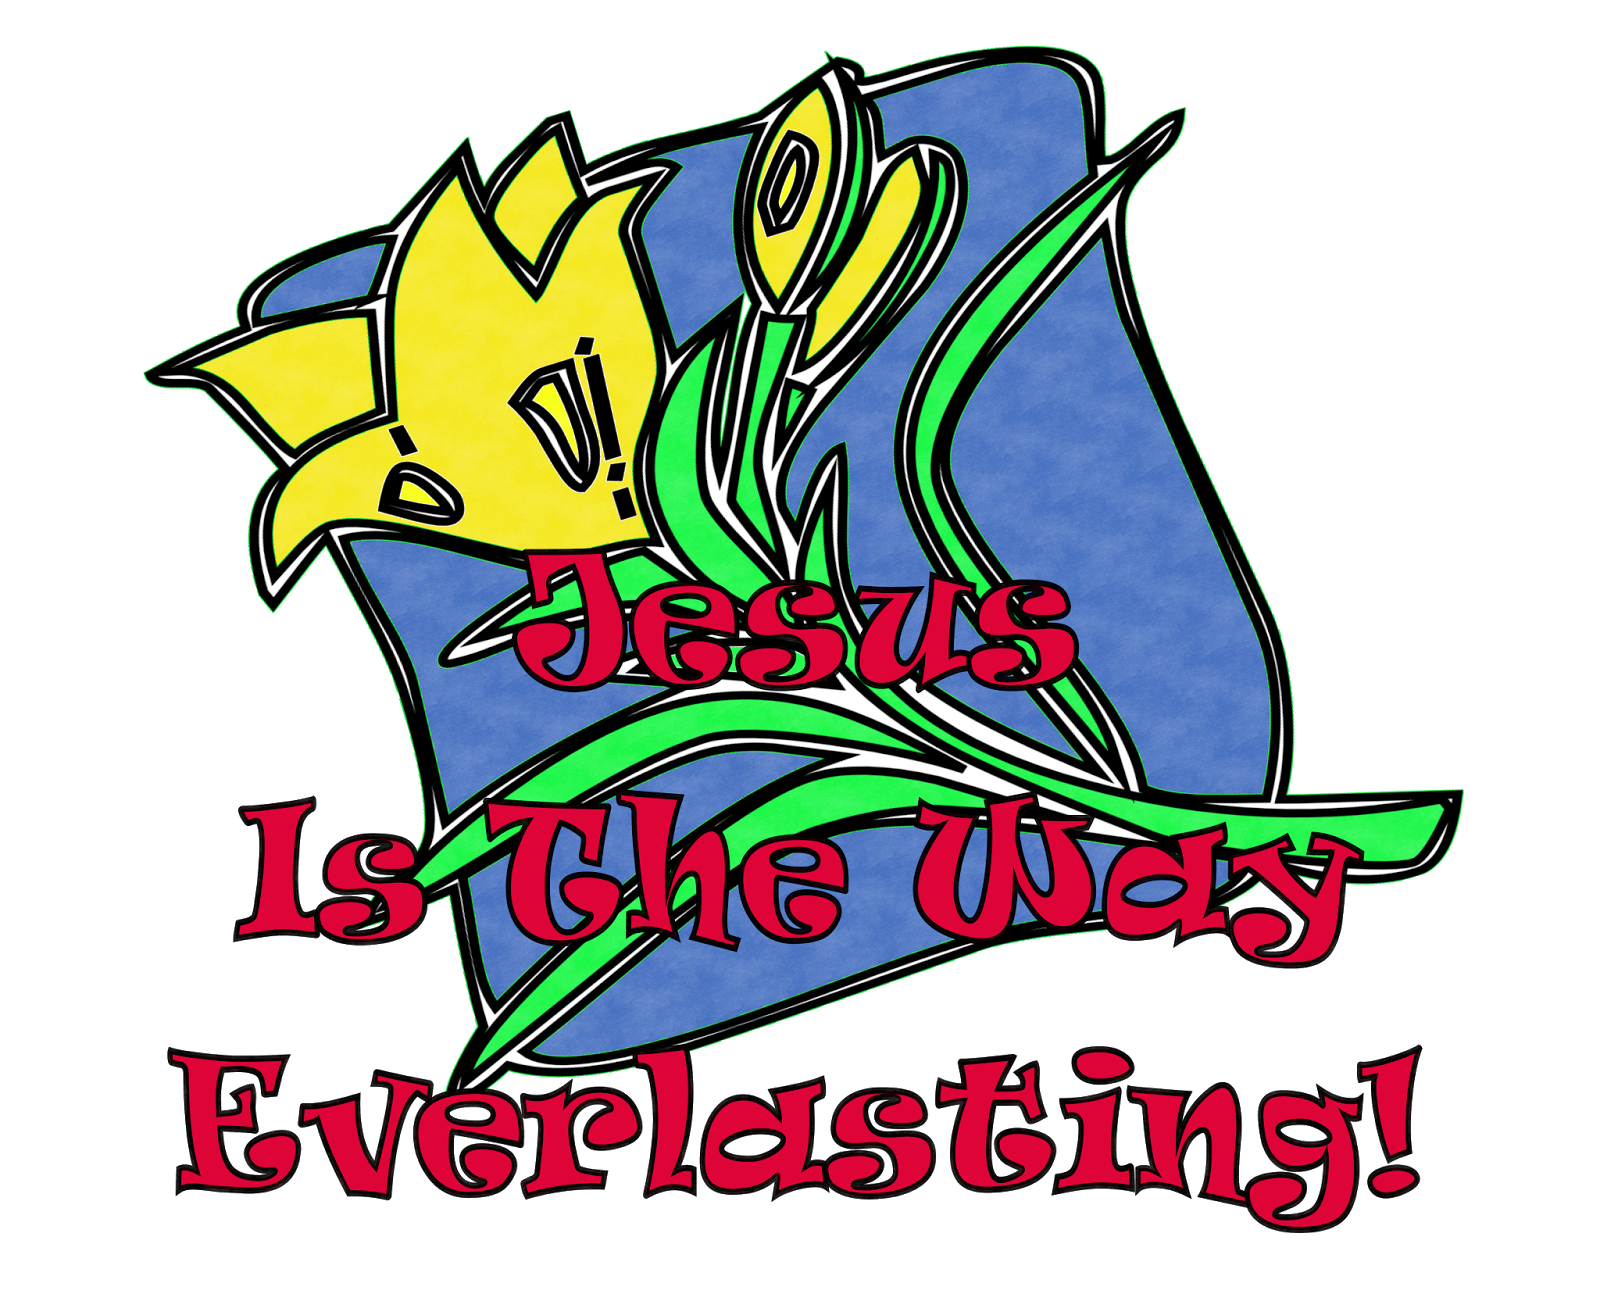 Poetry clipart truth. Christian images in my